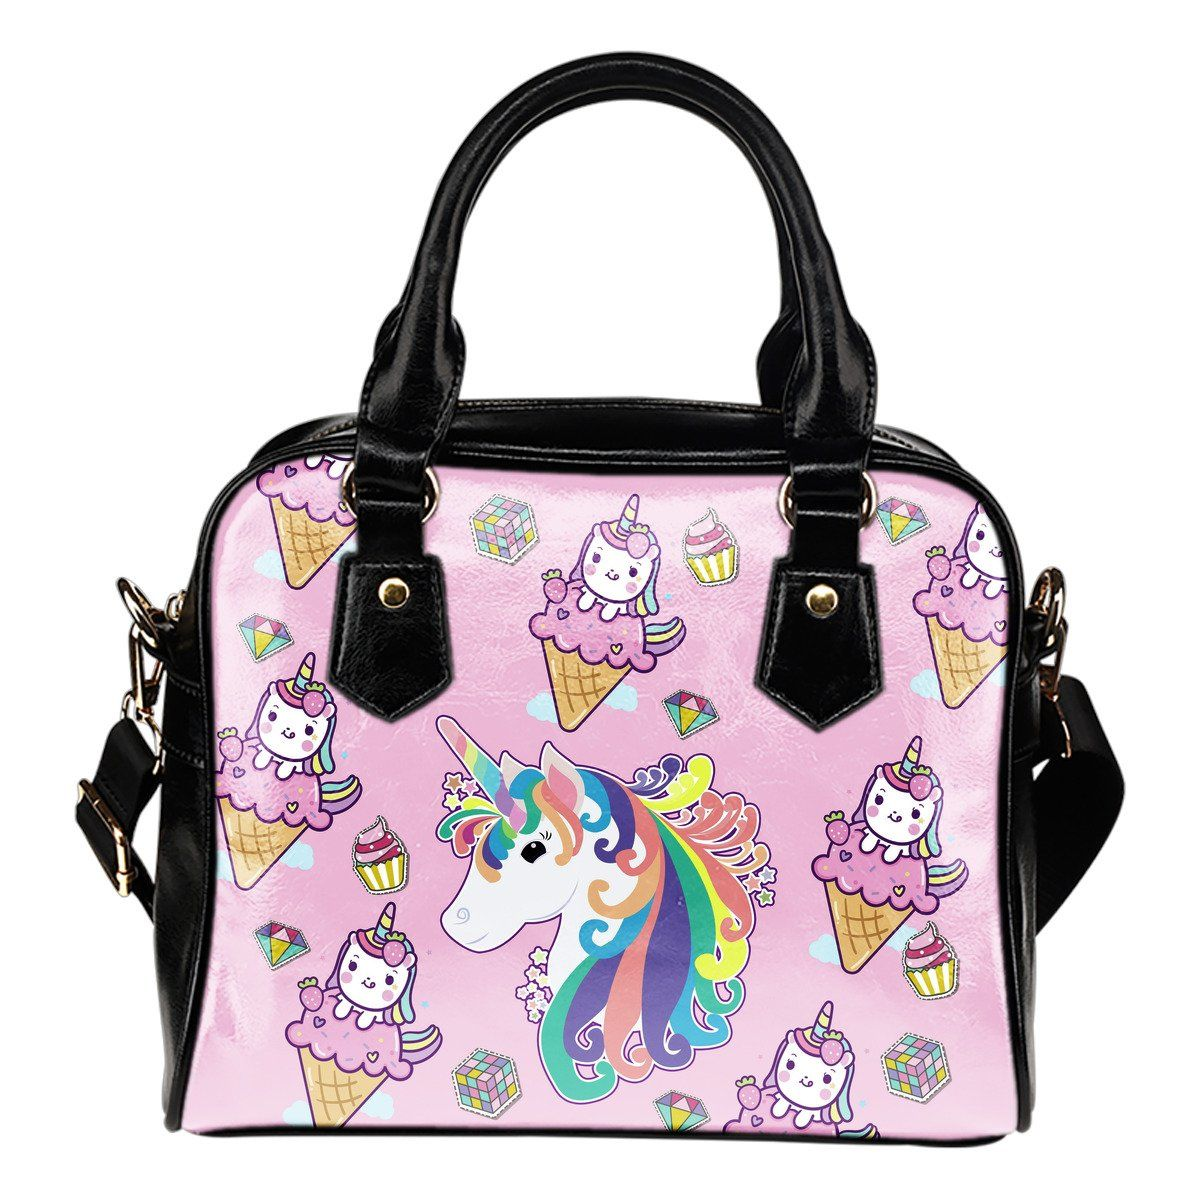 Twinkle Unicorn Shoulder Handbag Purse Purses